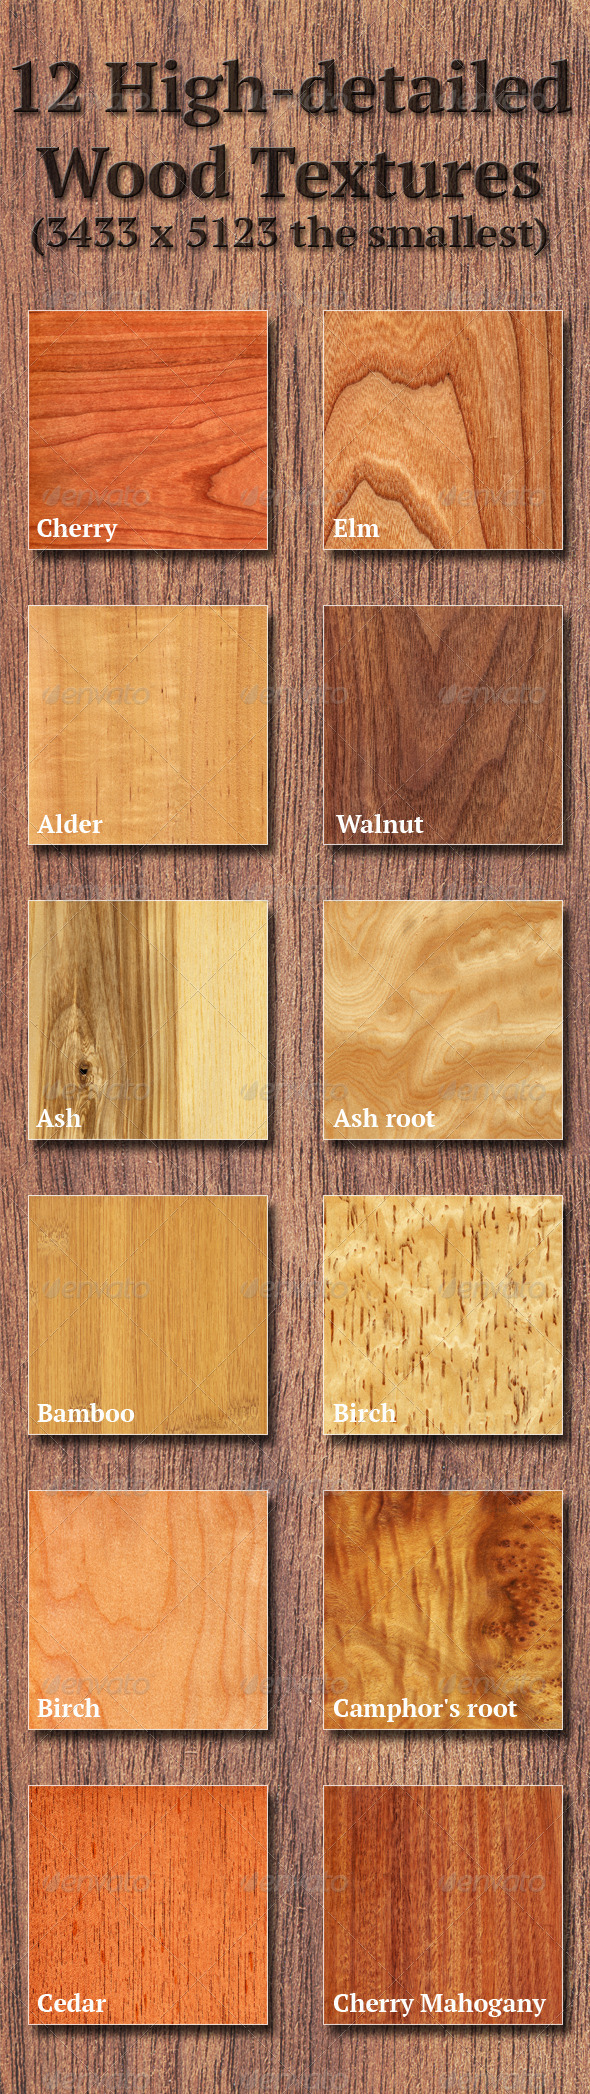 High-Detailed Wood Textures Set 1 - Wood Textures